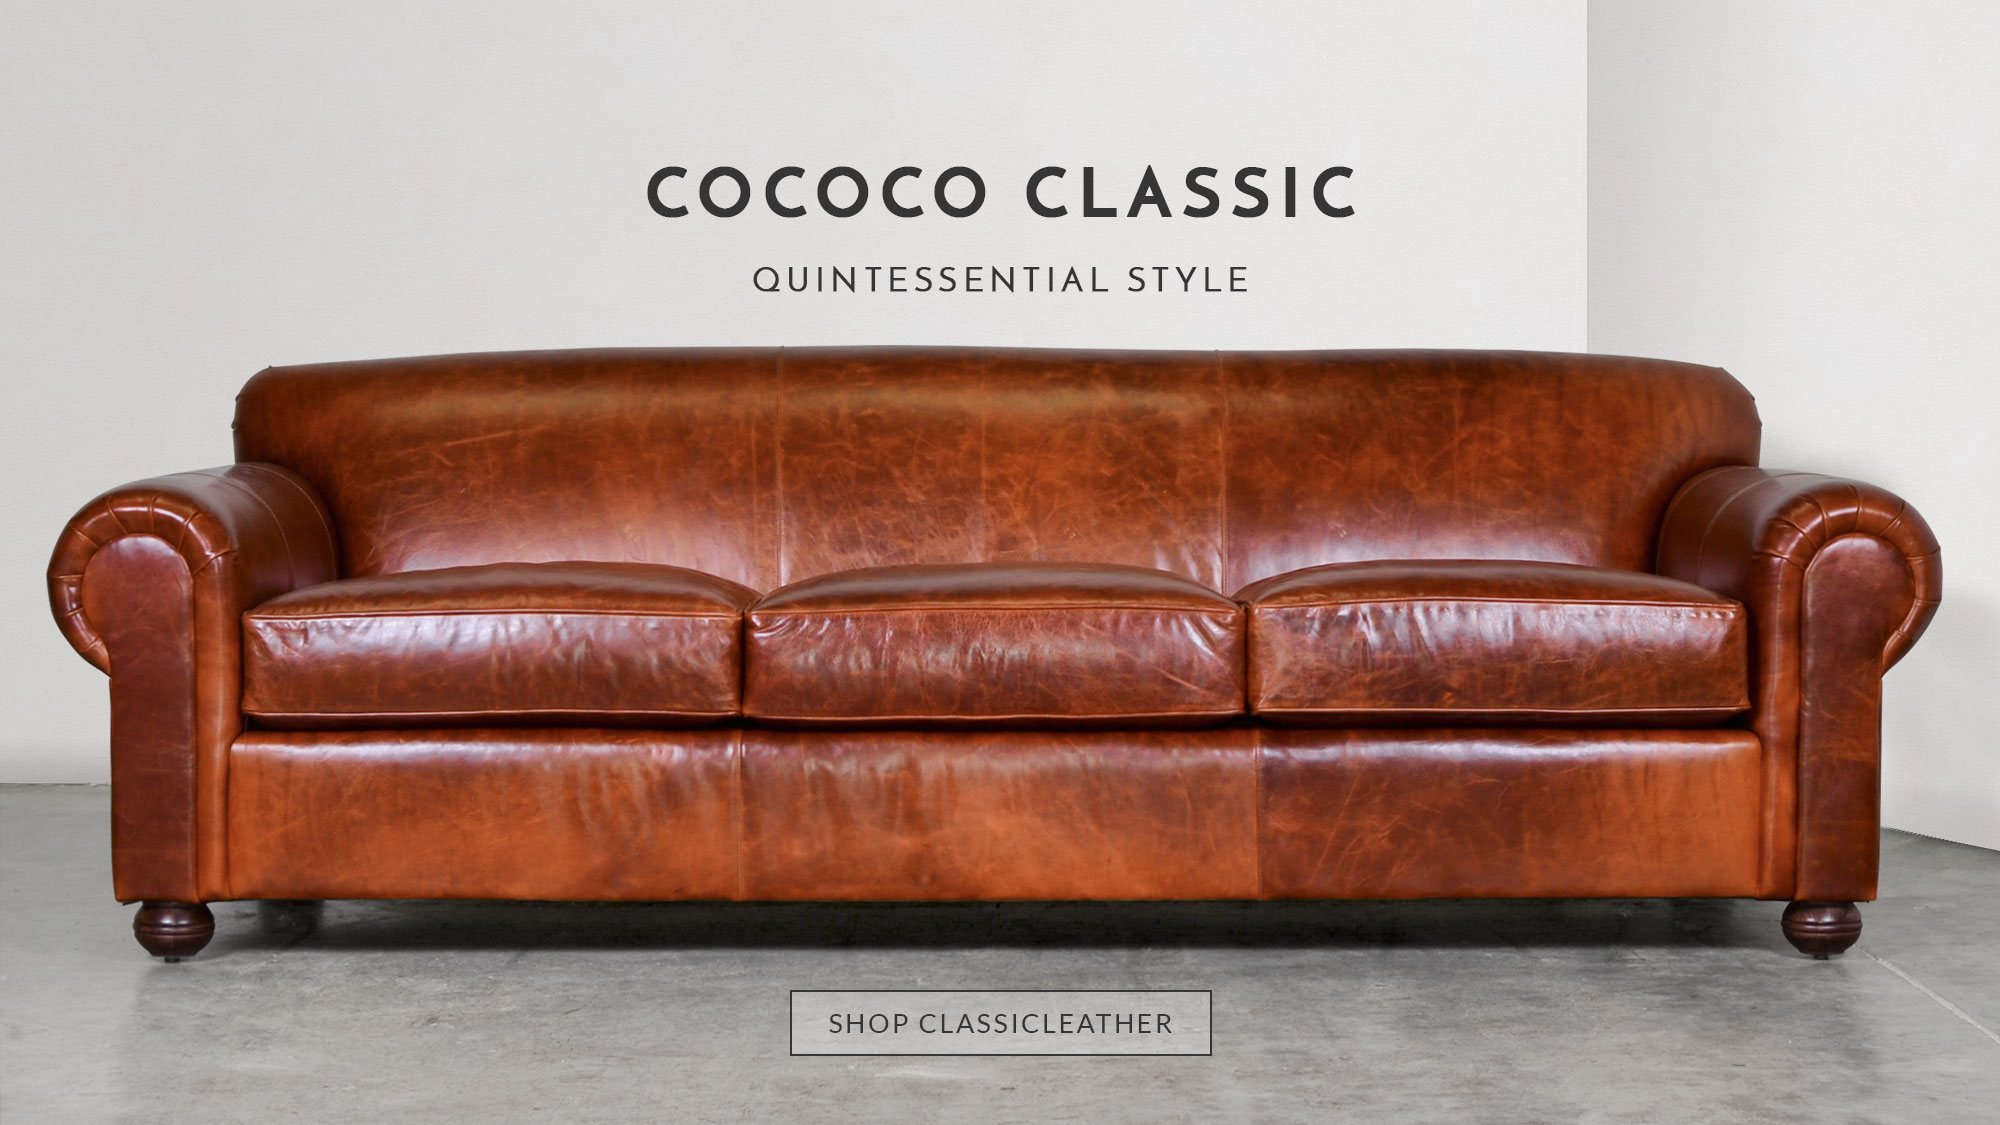 Chesterfield Sofas, Modern Furniture Made In Usa | Cococohome Within Gina Blue Leather Sofa Chairs (View 8 of 25)